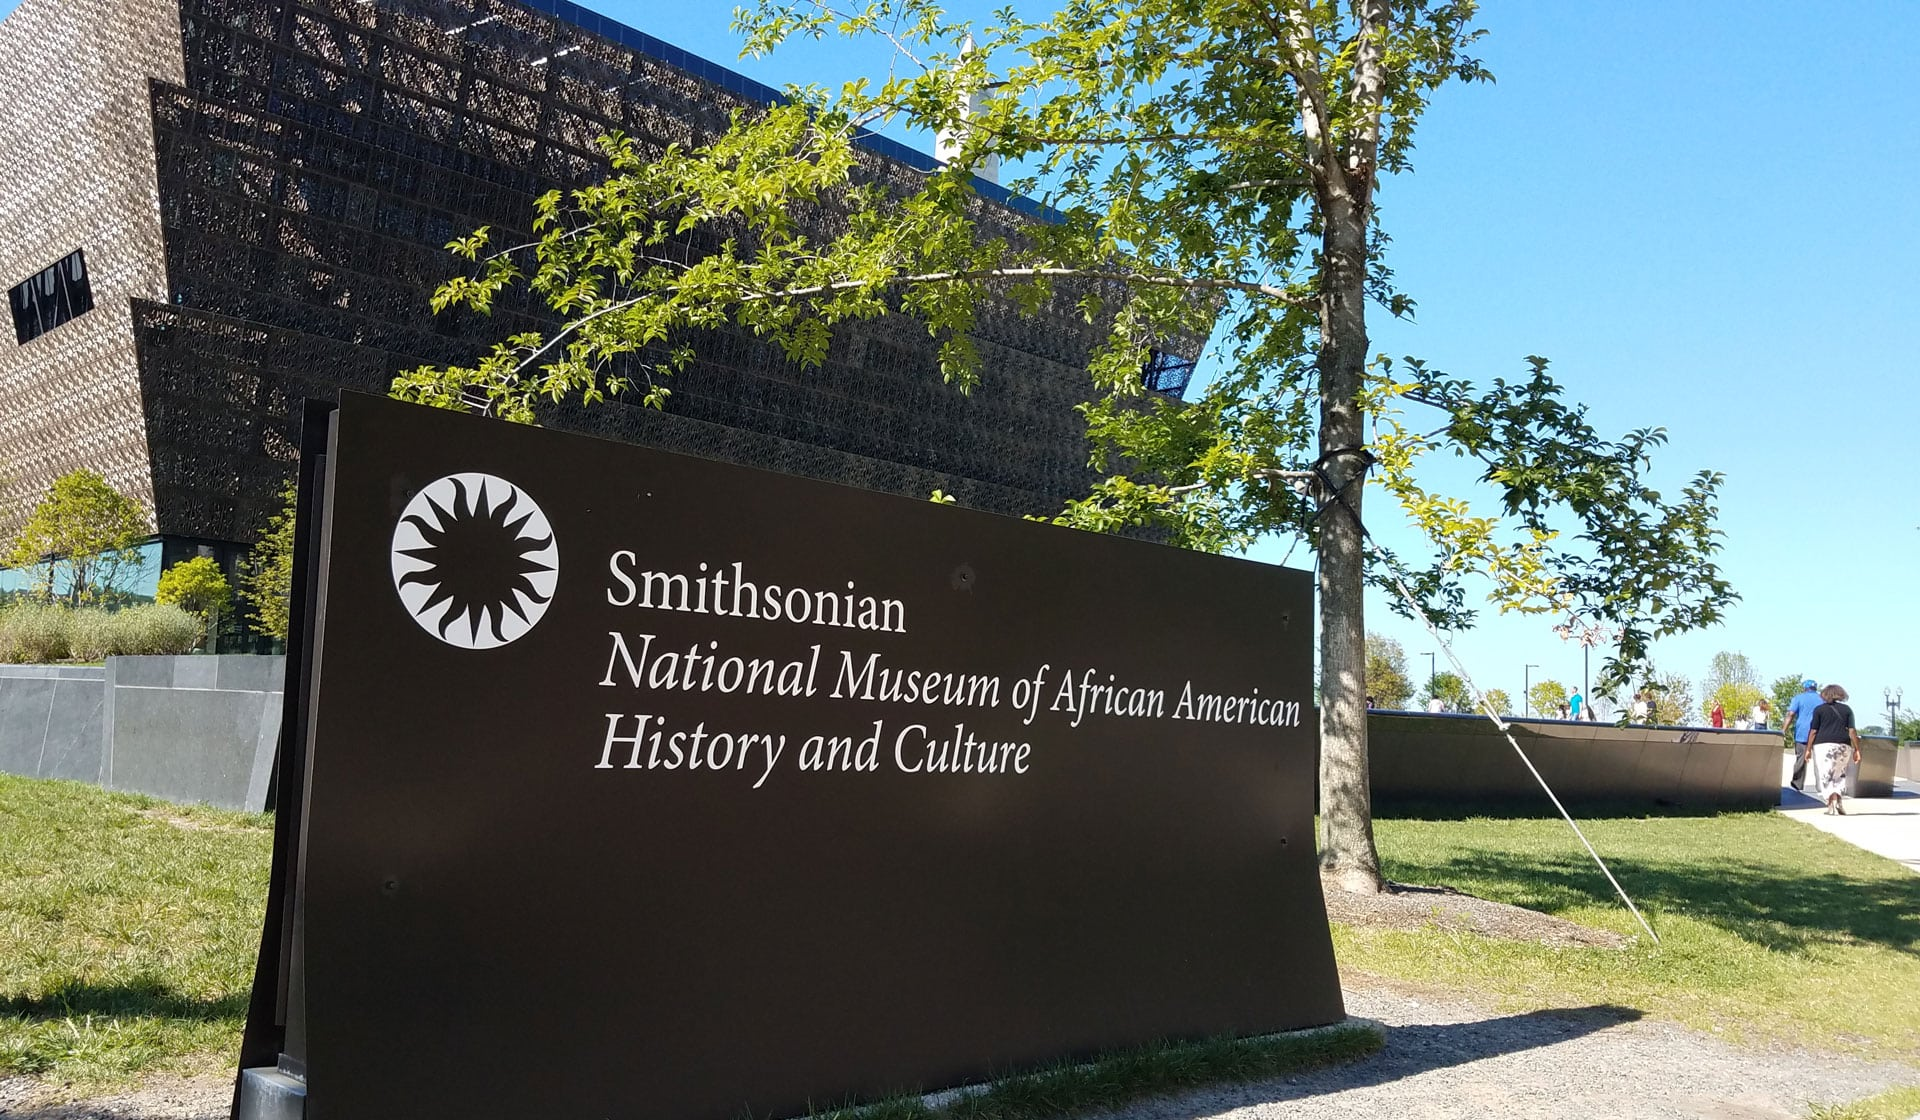 Visiting the Smithsonian's Museum of African American history